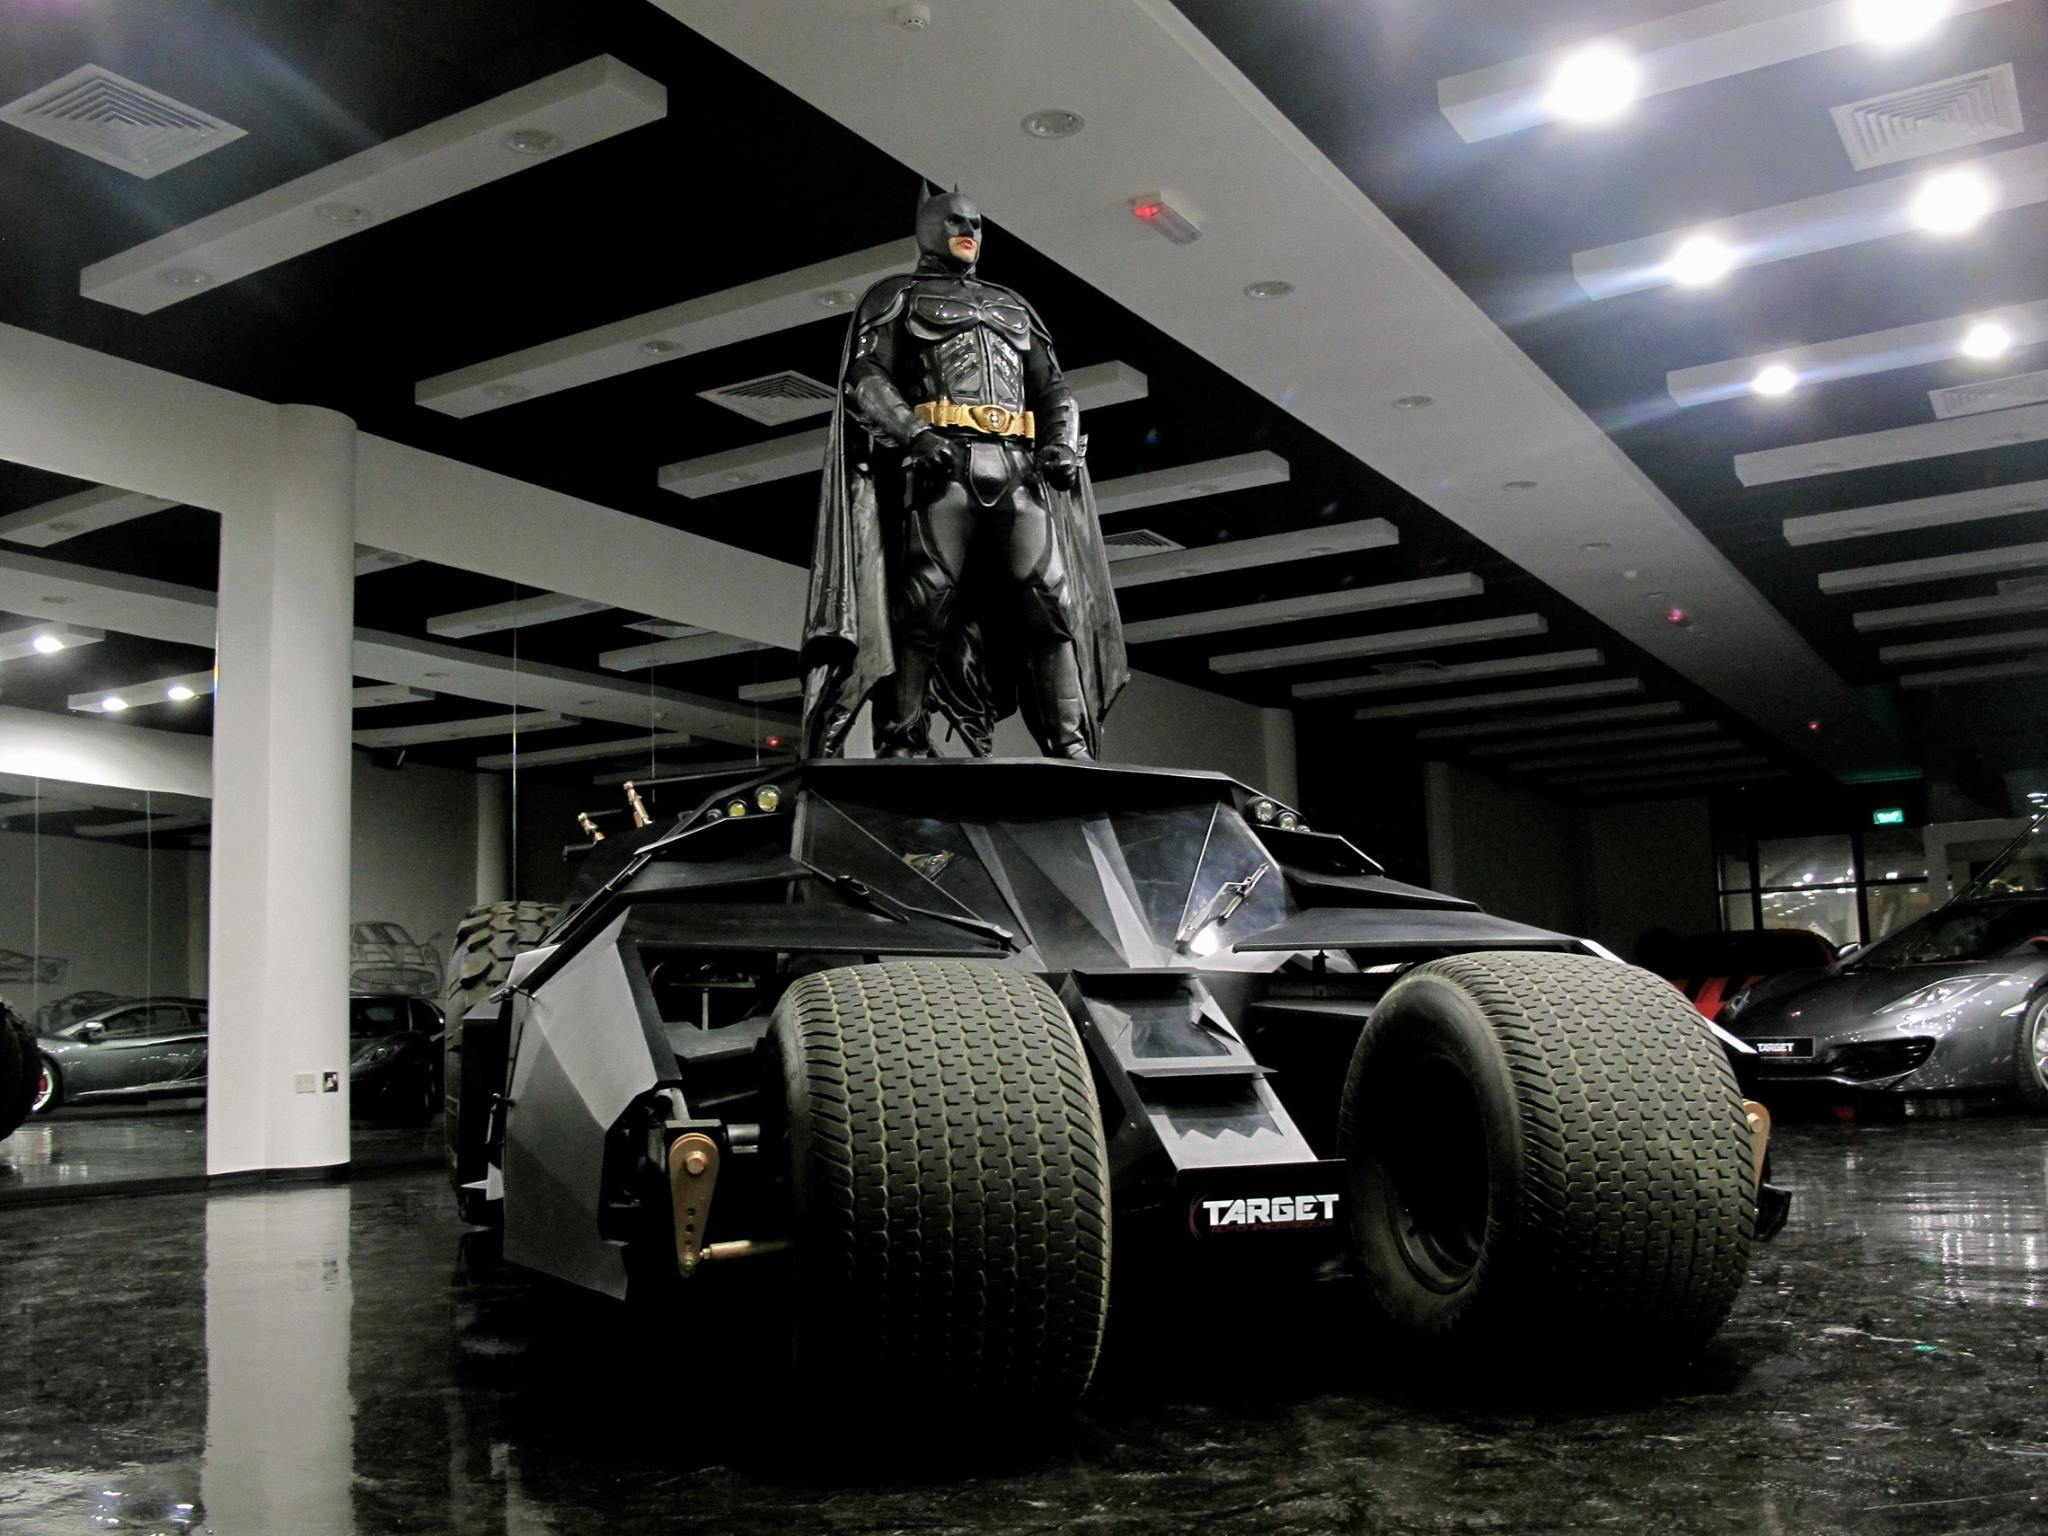 Tumbler batmobile and tron bike for sale in dubai luxury for Newspaper wallpaper for sale